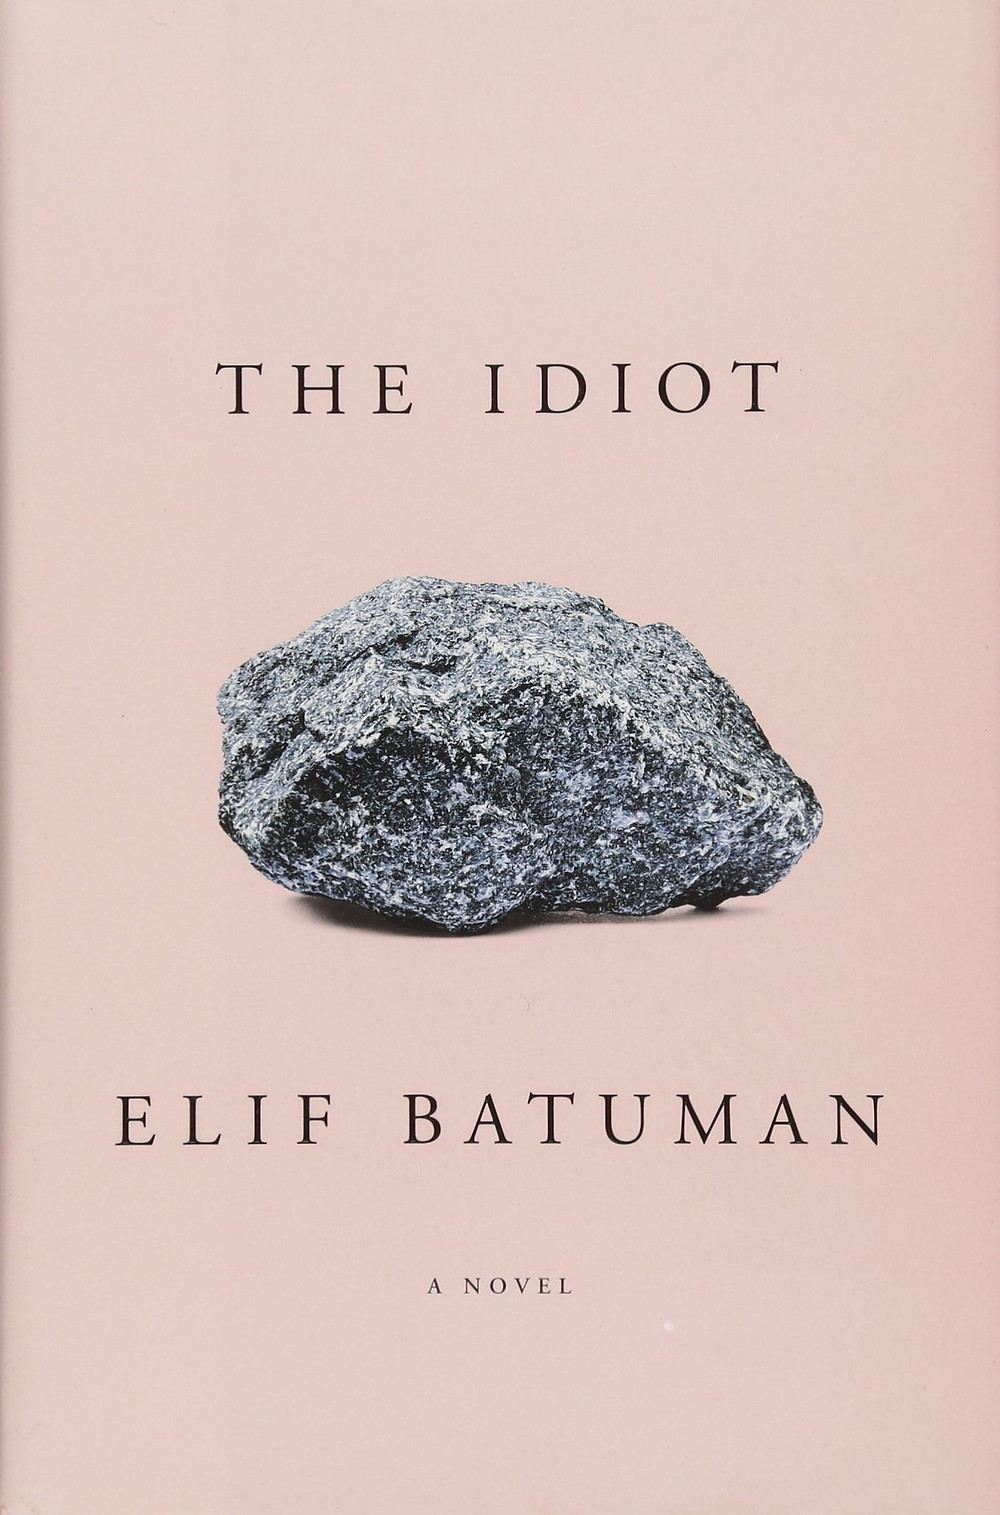 The Idiot by Elif Batuman thebookslut quarentine reads book reviews pink book cover rock